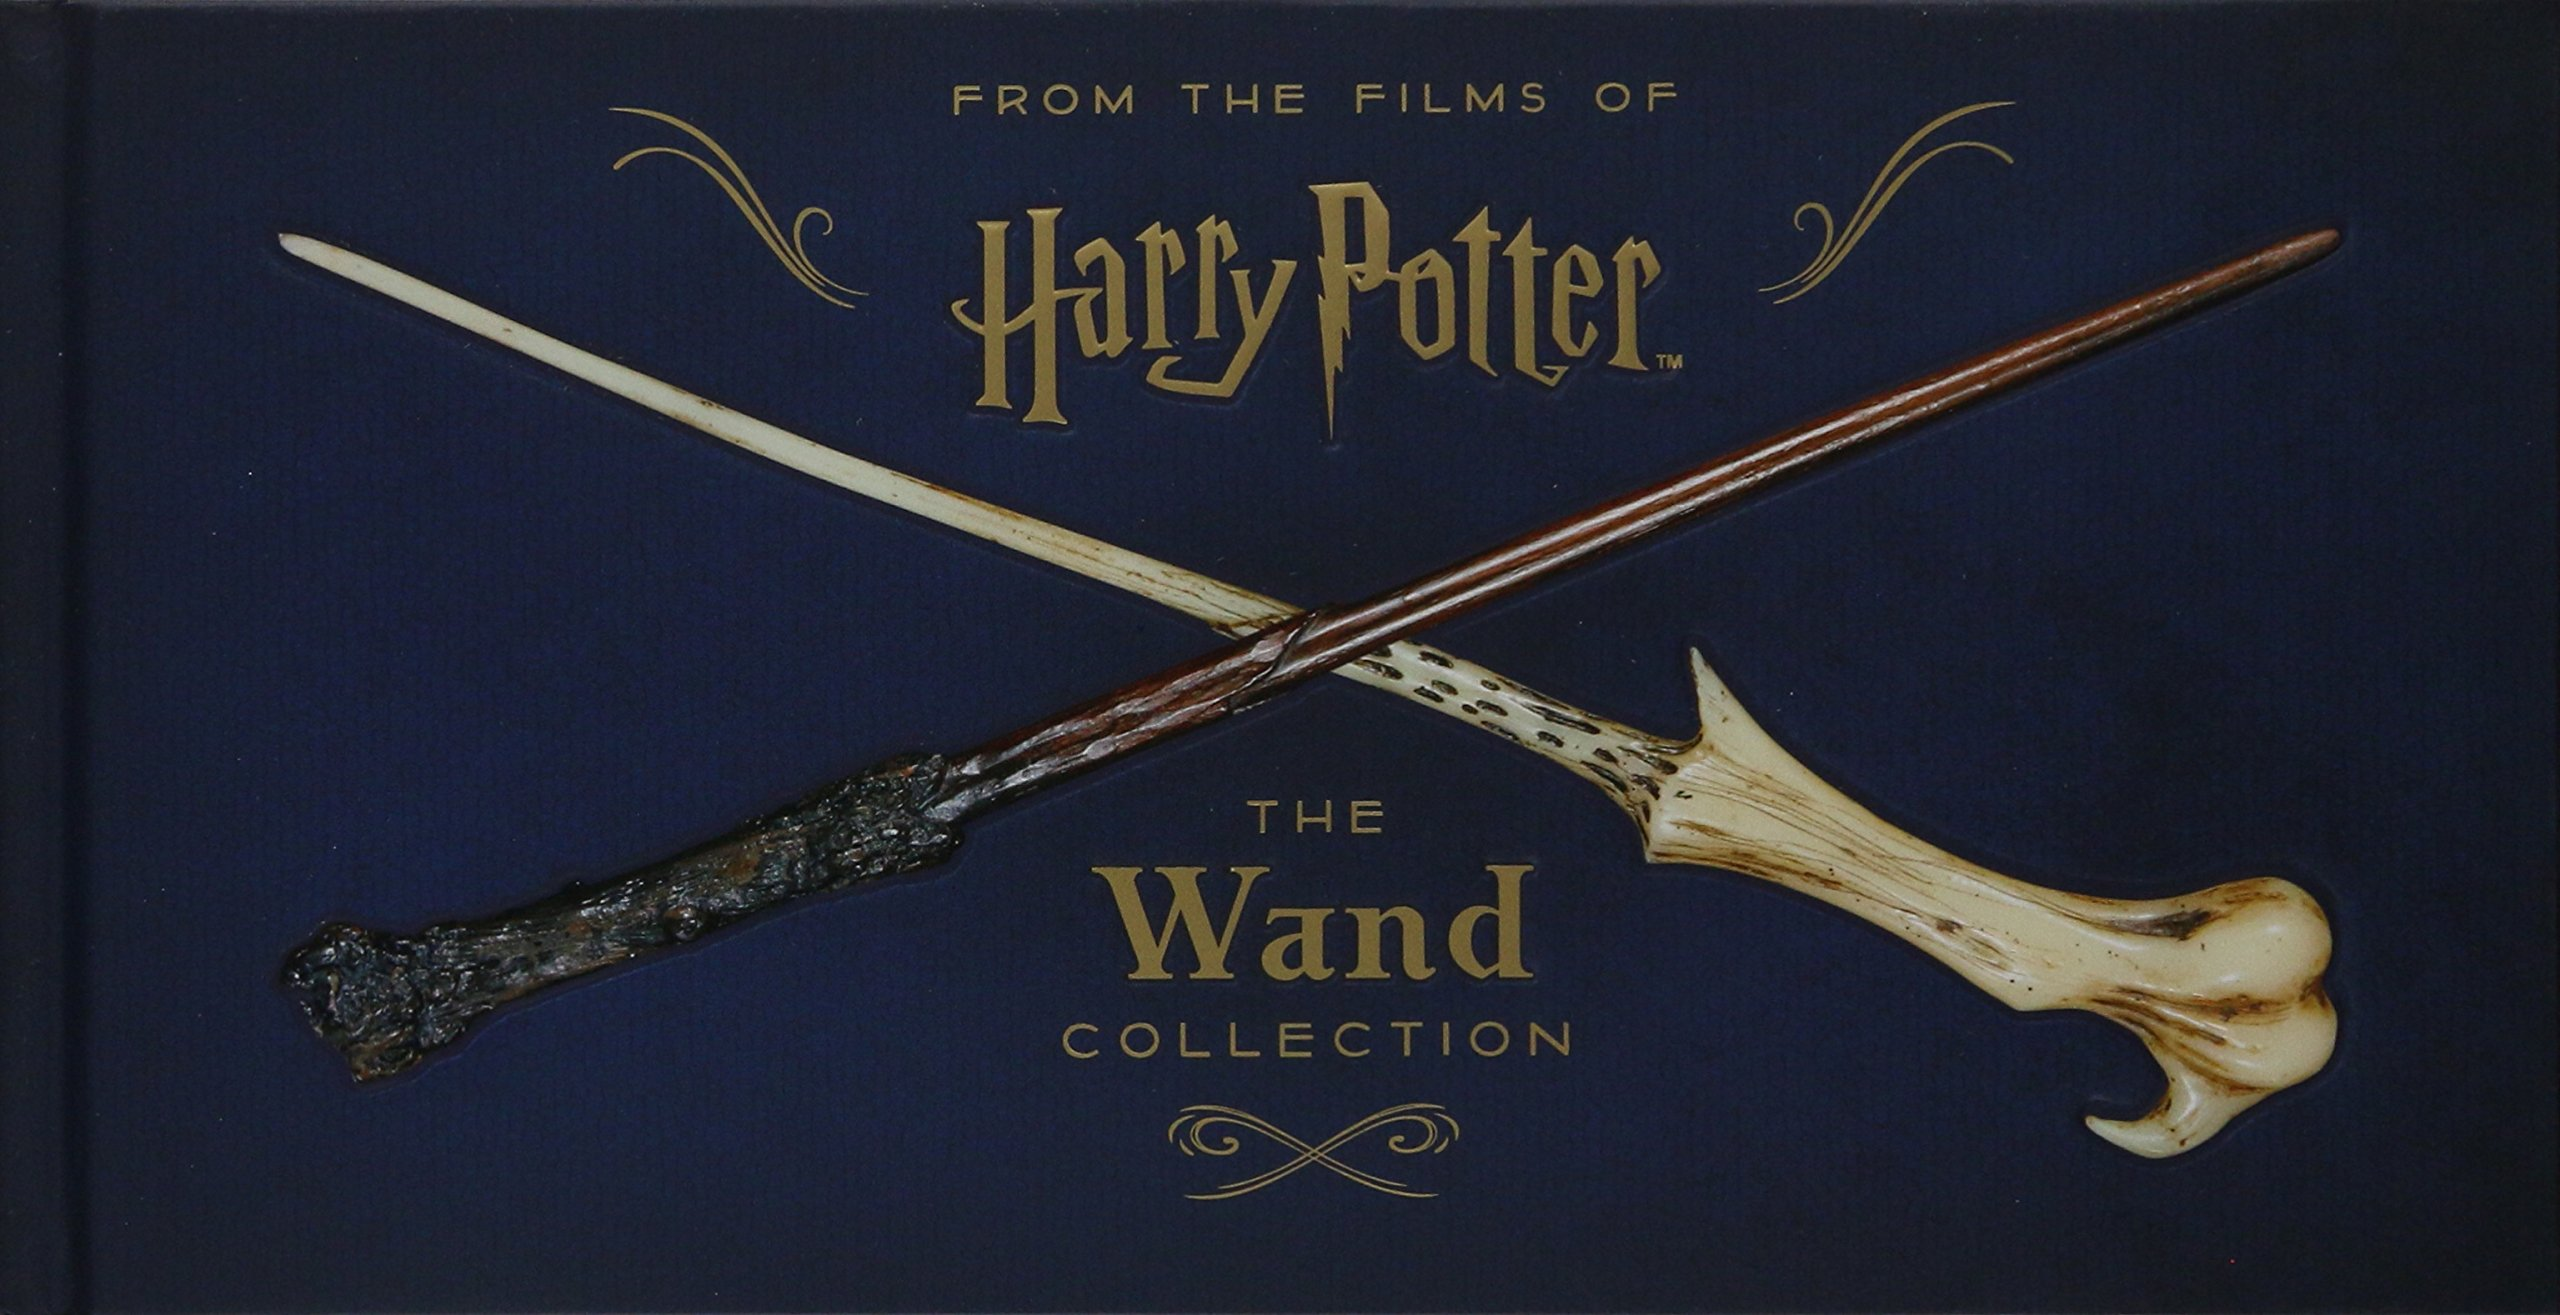 Download Harry Potter. The Wand Collection 